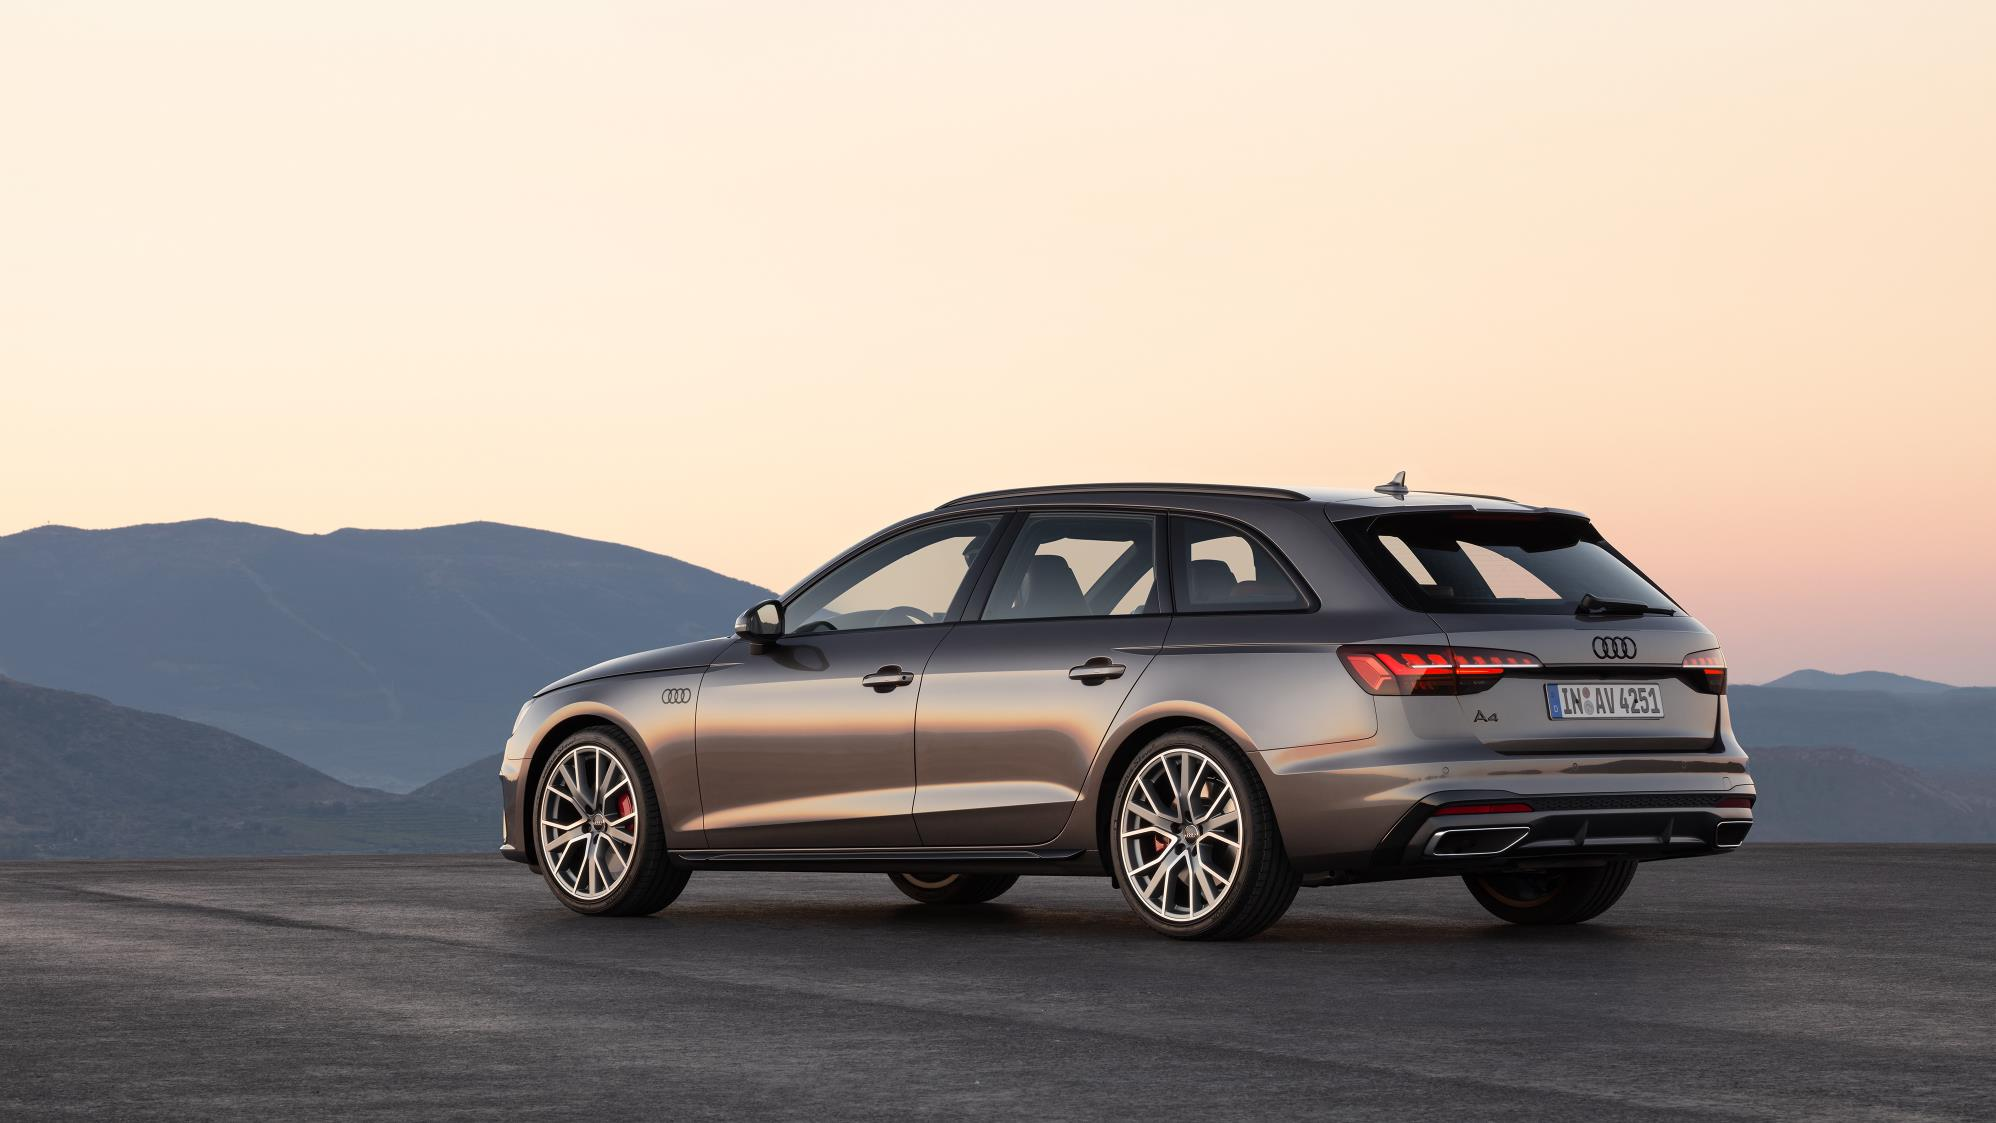 The 12 Best Estate Cars to Buy in 2020